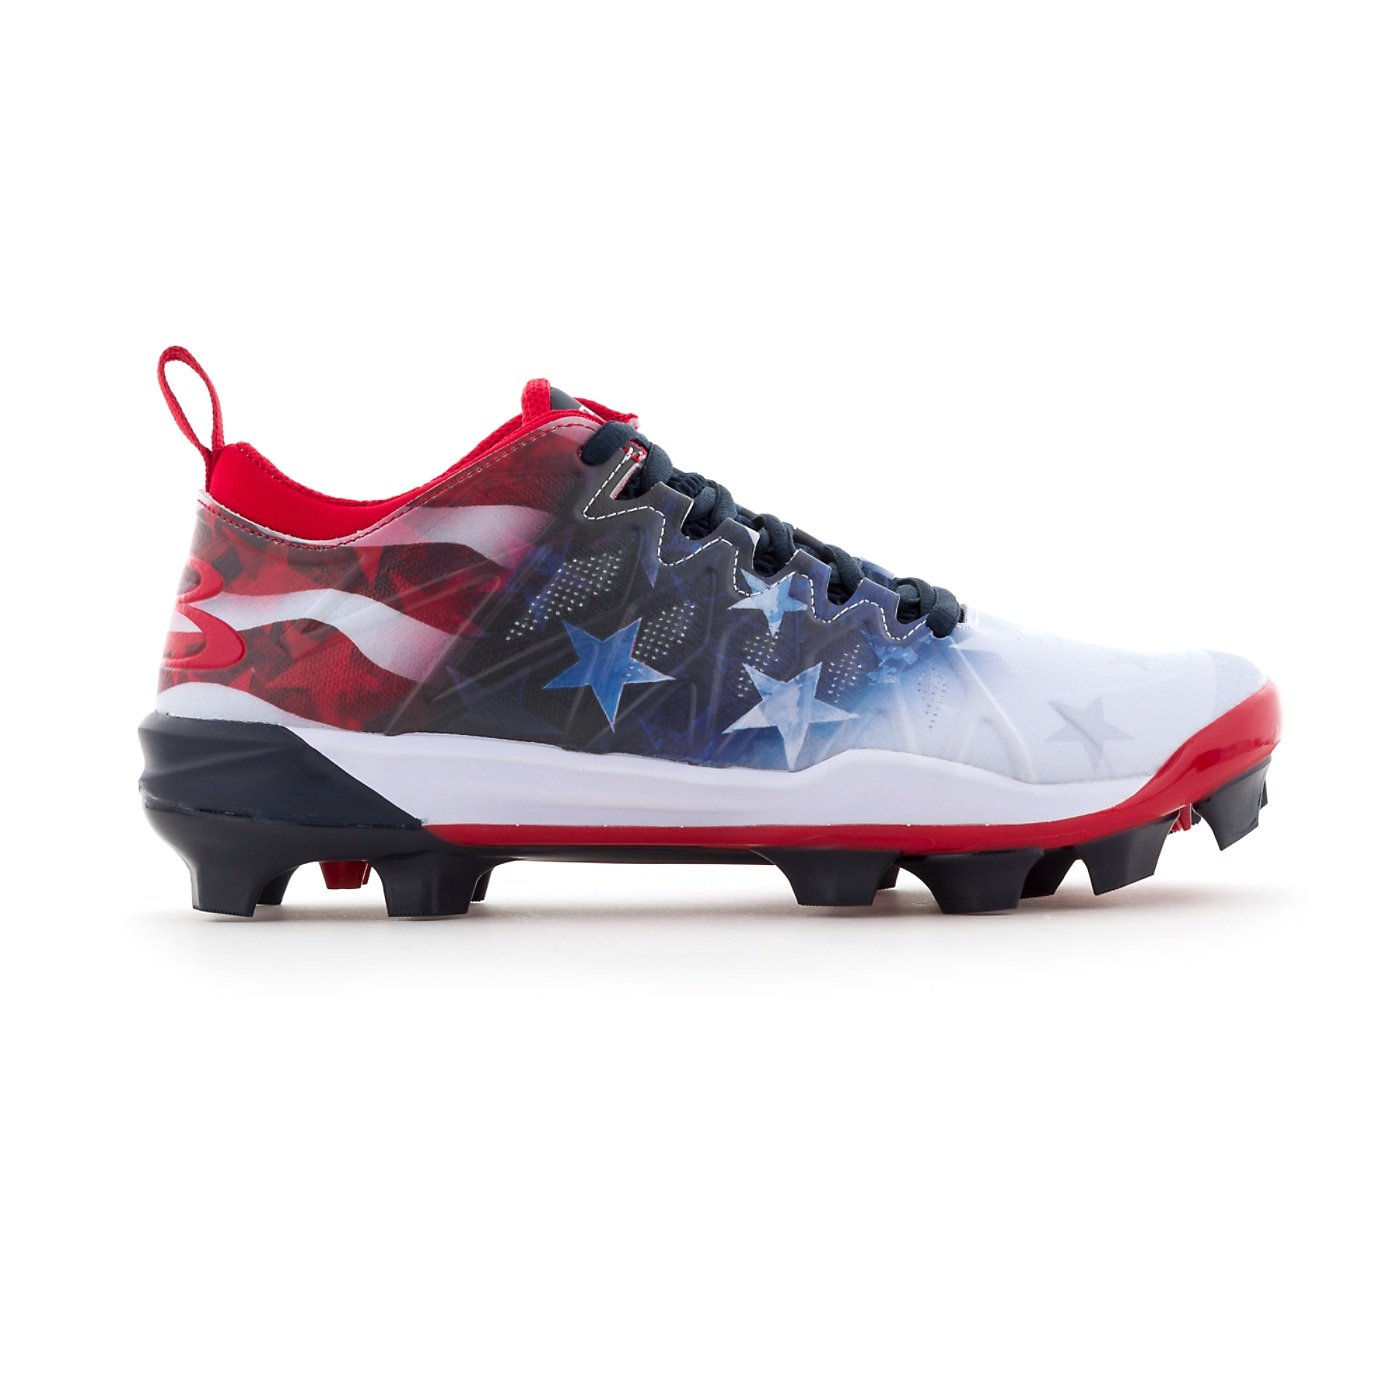 Boombah Women's Squadron Flag Molded Cleats Royal Blue/Red/White - Size 9.5 by Boombah (Image #1)